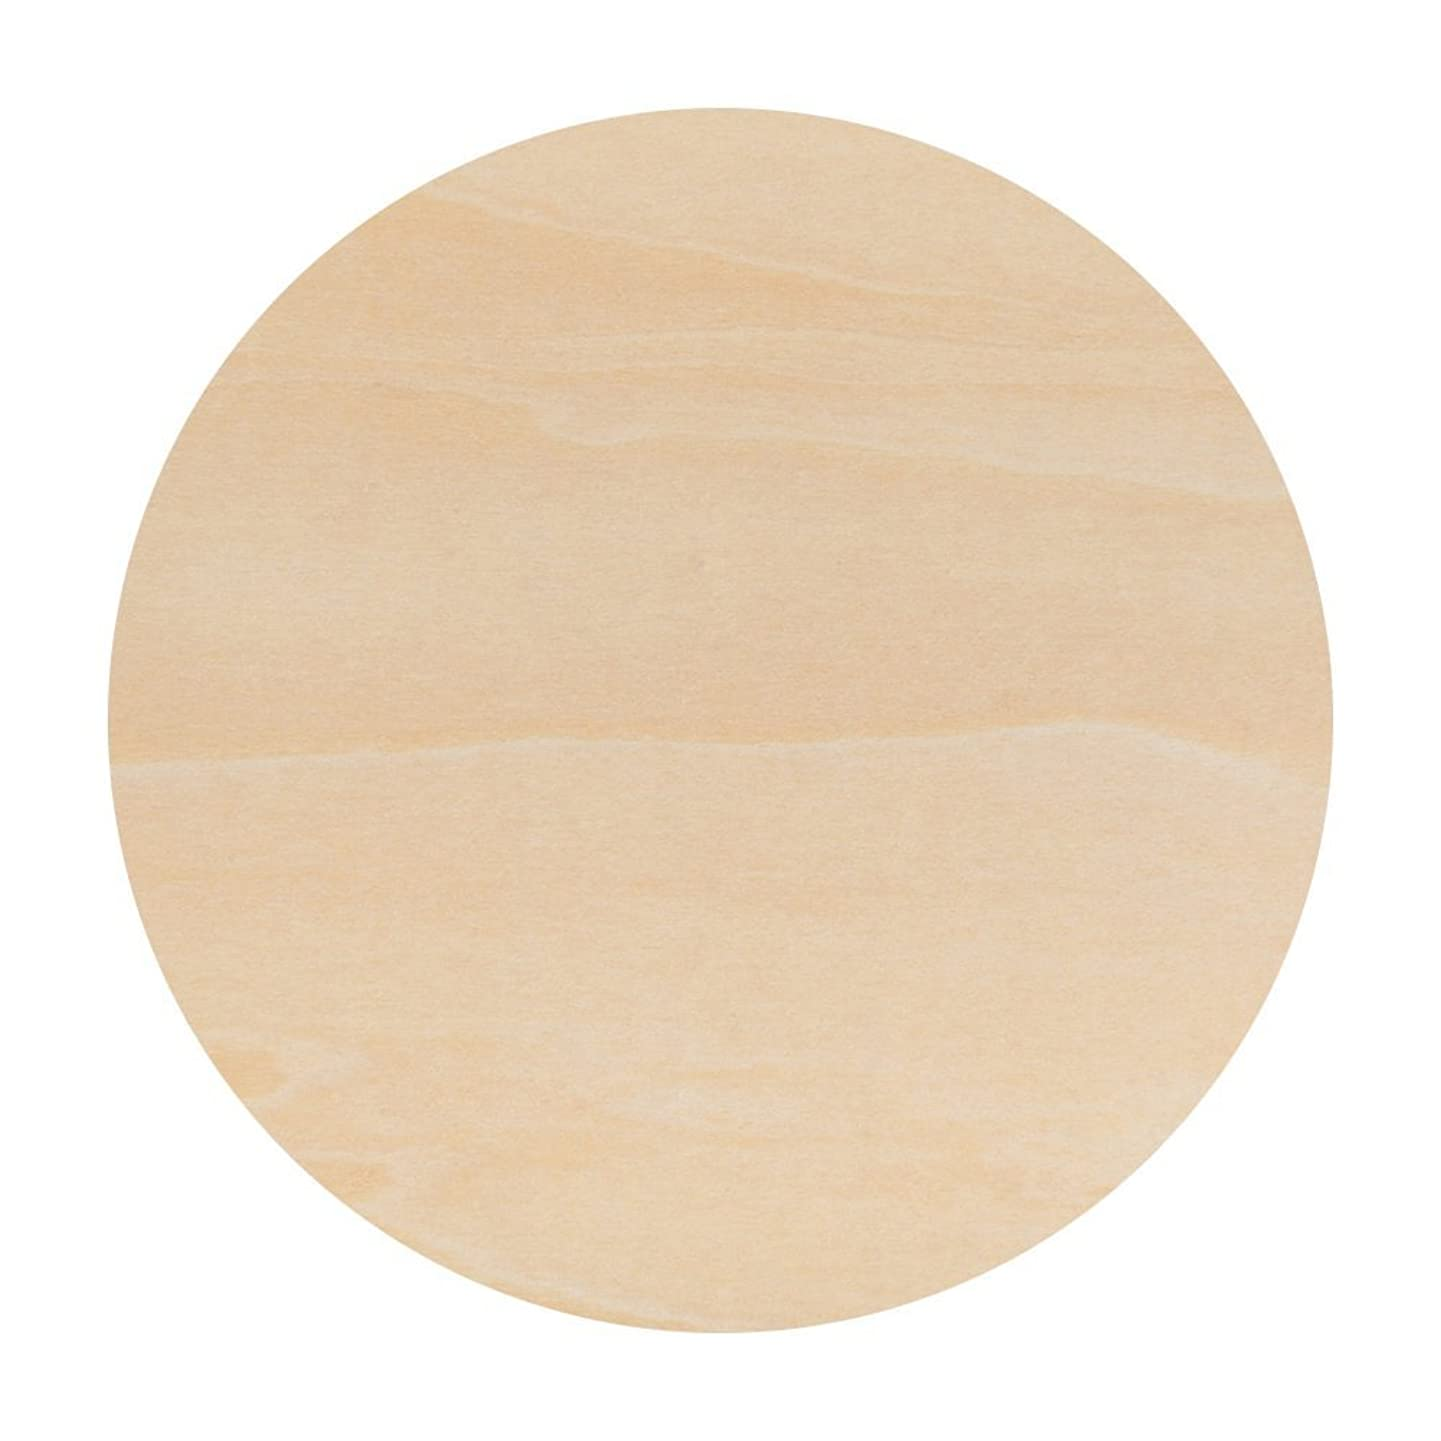 Unfinished Round Wood Circle Cutout 6 inch - Bag of 10 - by Woodpeckers